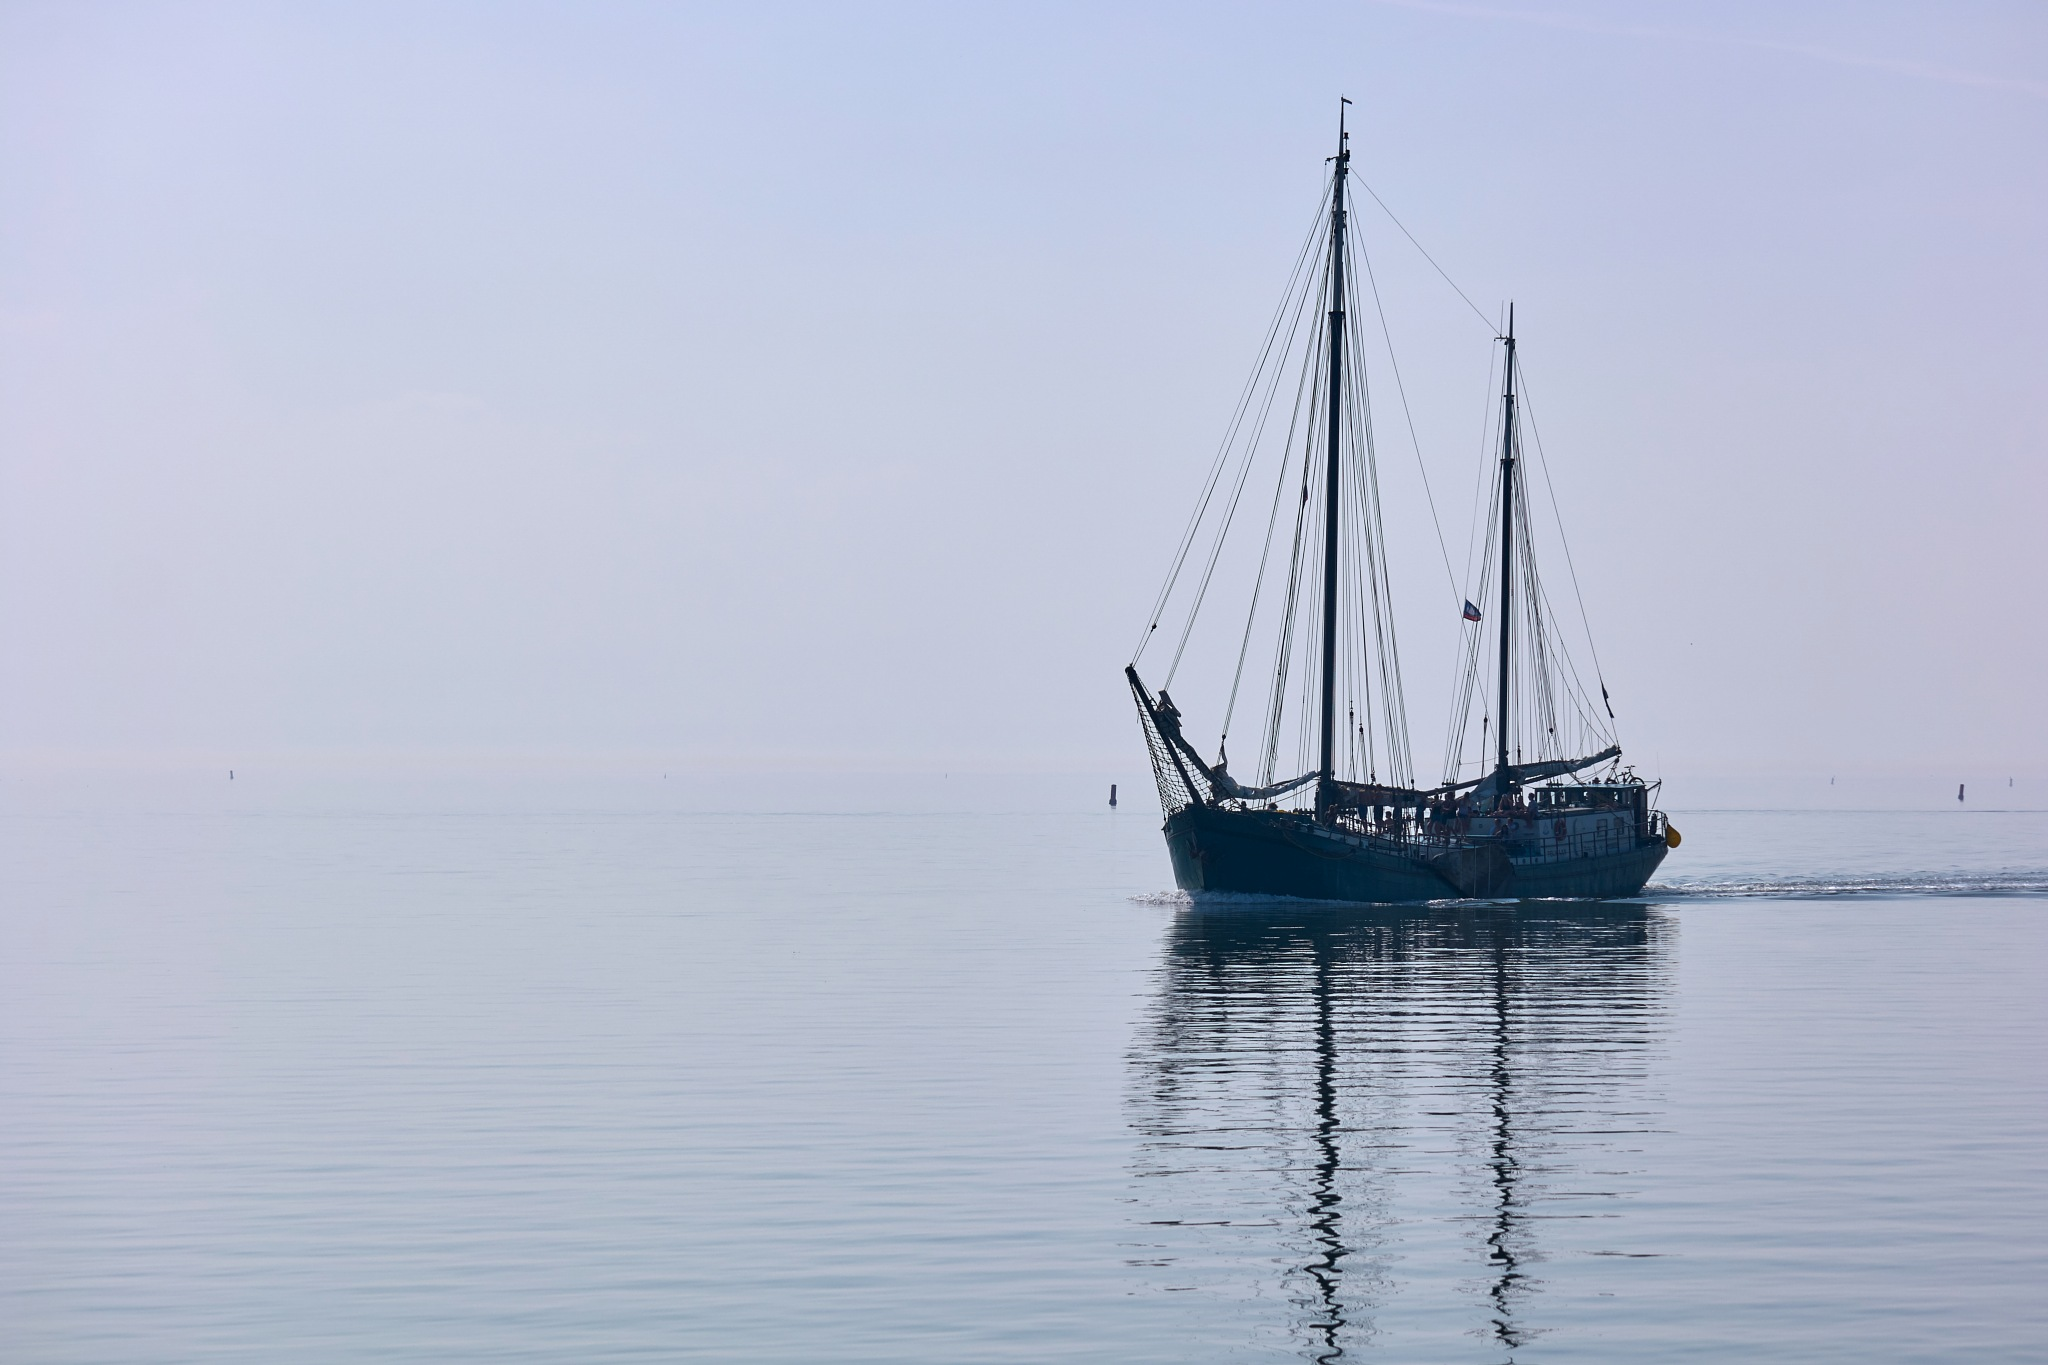 Ghost ship by theseend